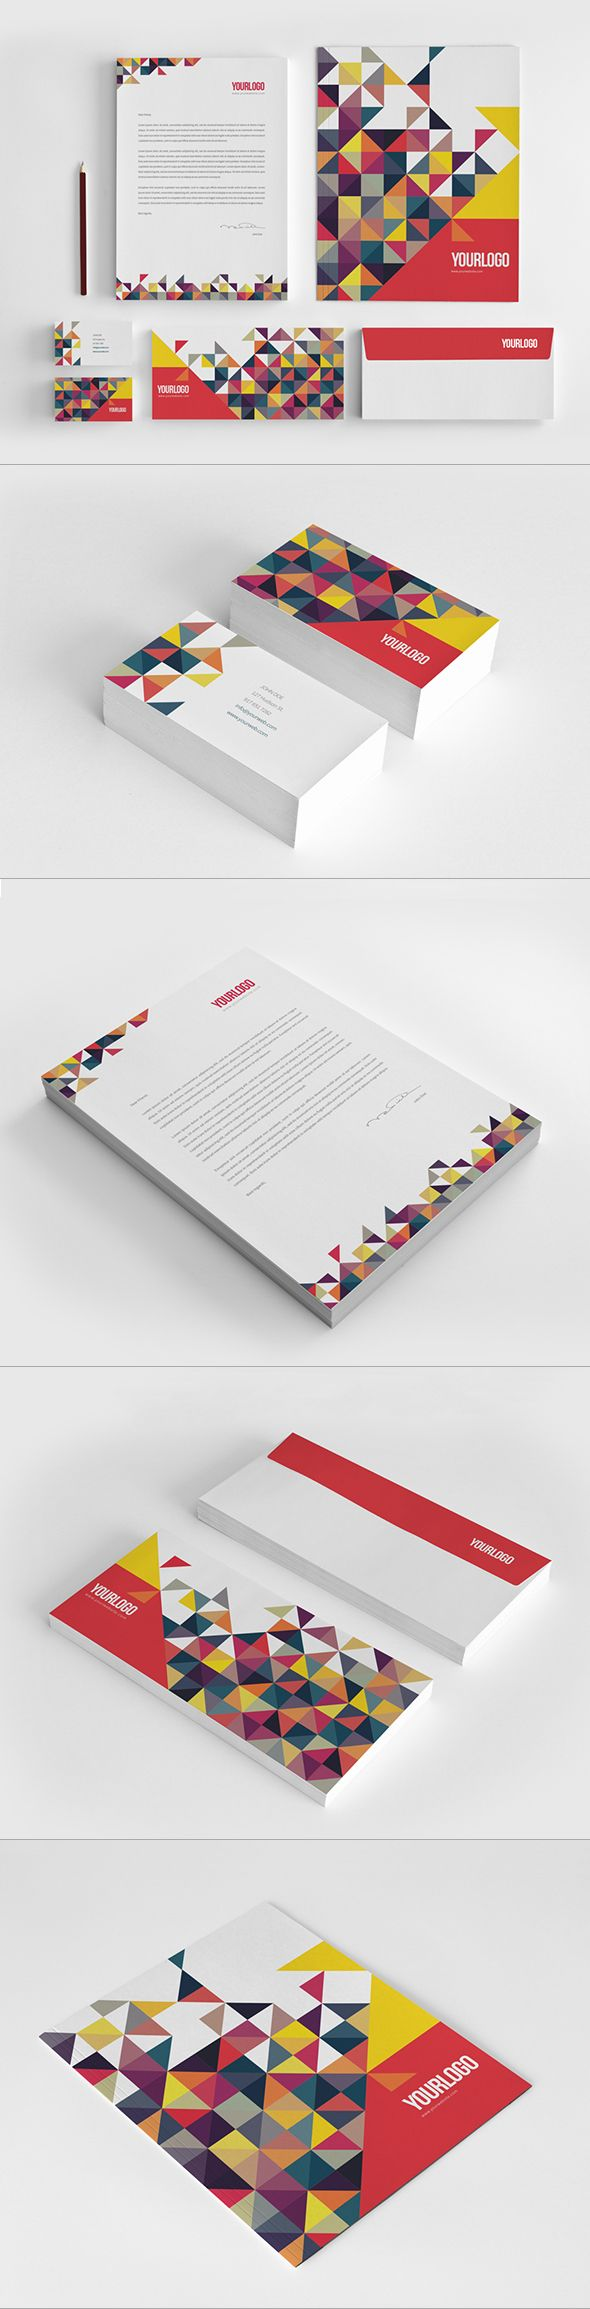 Colorful Triangles Stationery. Download here: http://graphicriver.net/item/colorful-triangles-stationery/6828143?ref=abradesign #design #stationery